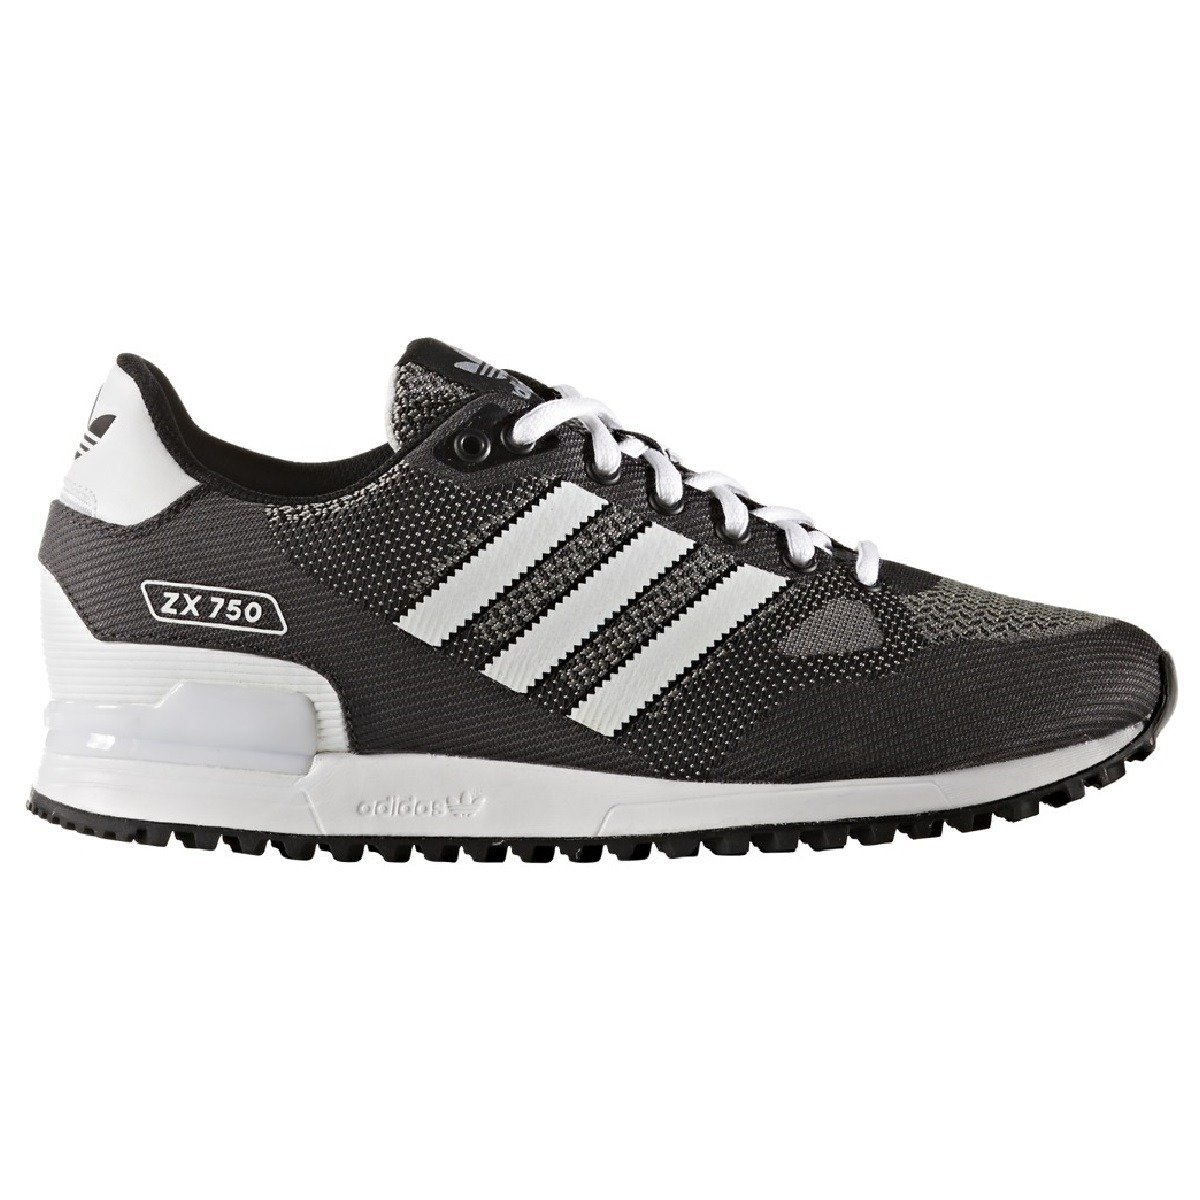 outlet store 4a649 4c543 Adidas ZX 750 WV Shoes - BB1222